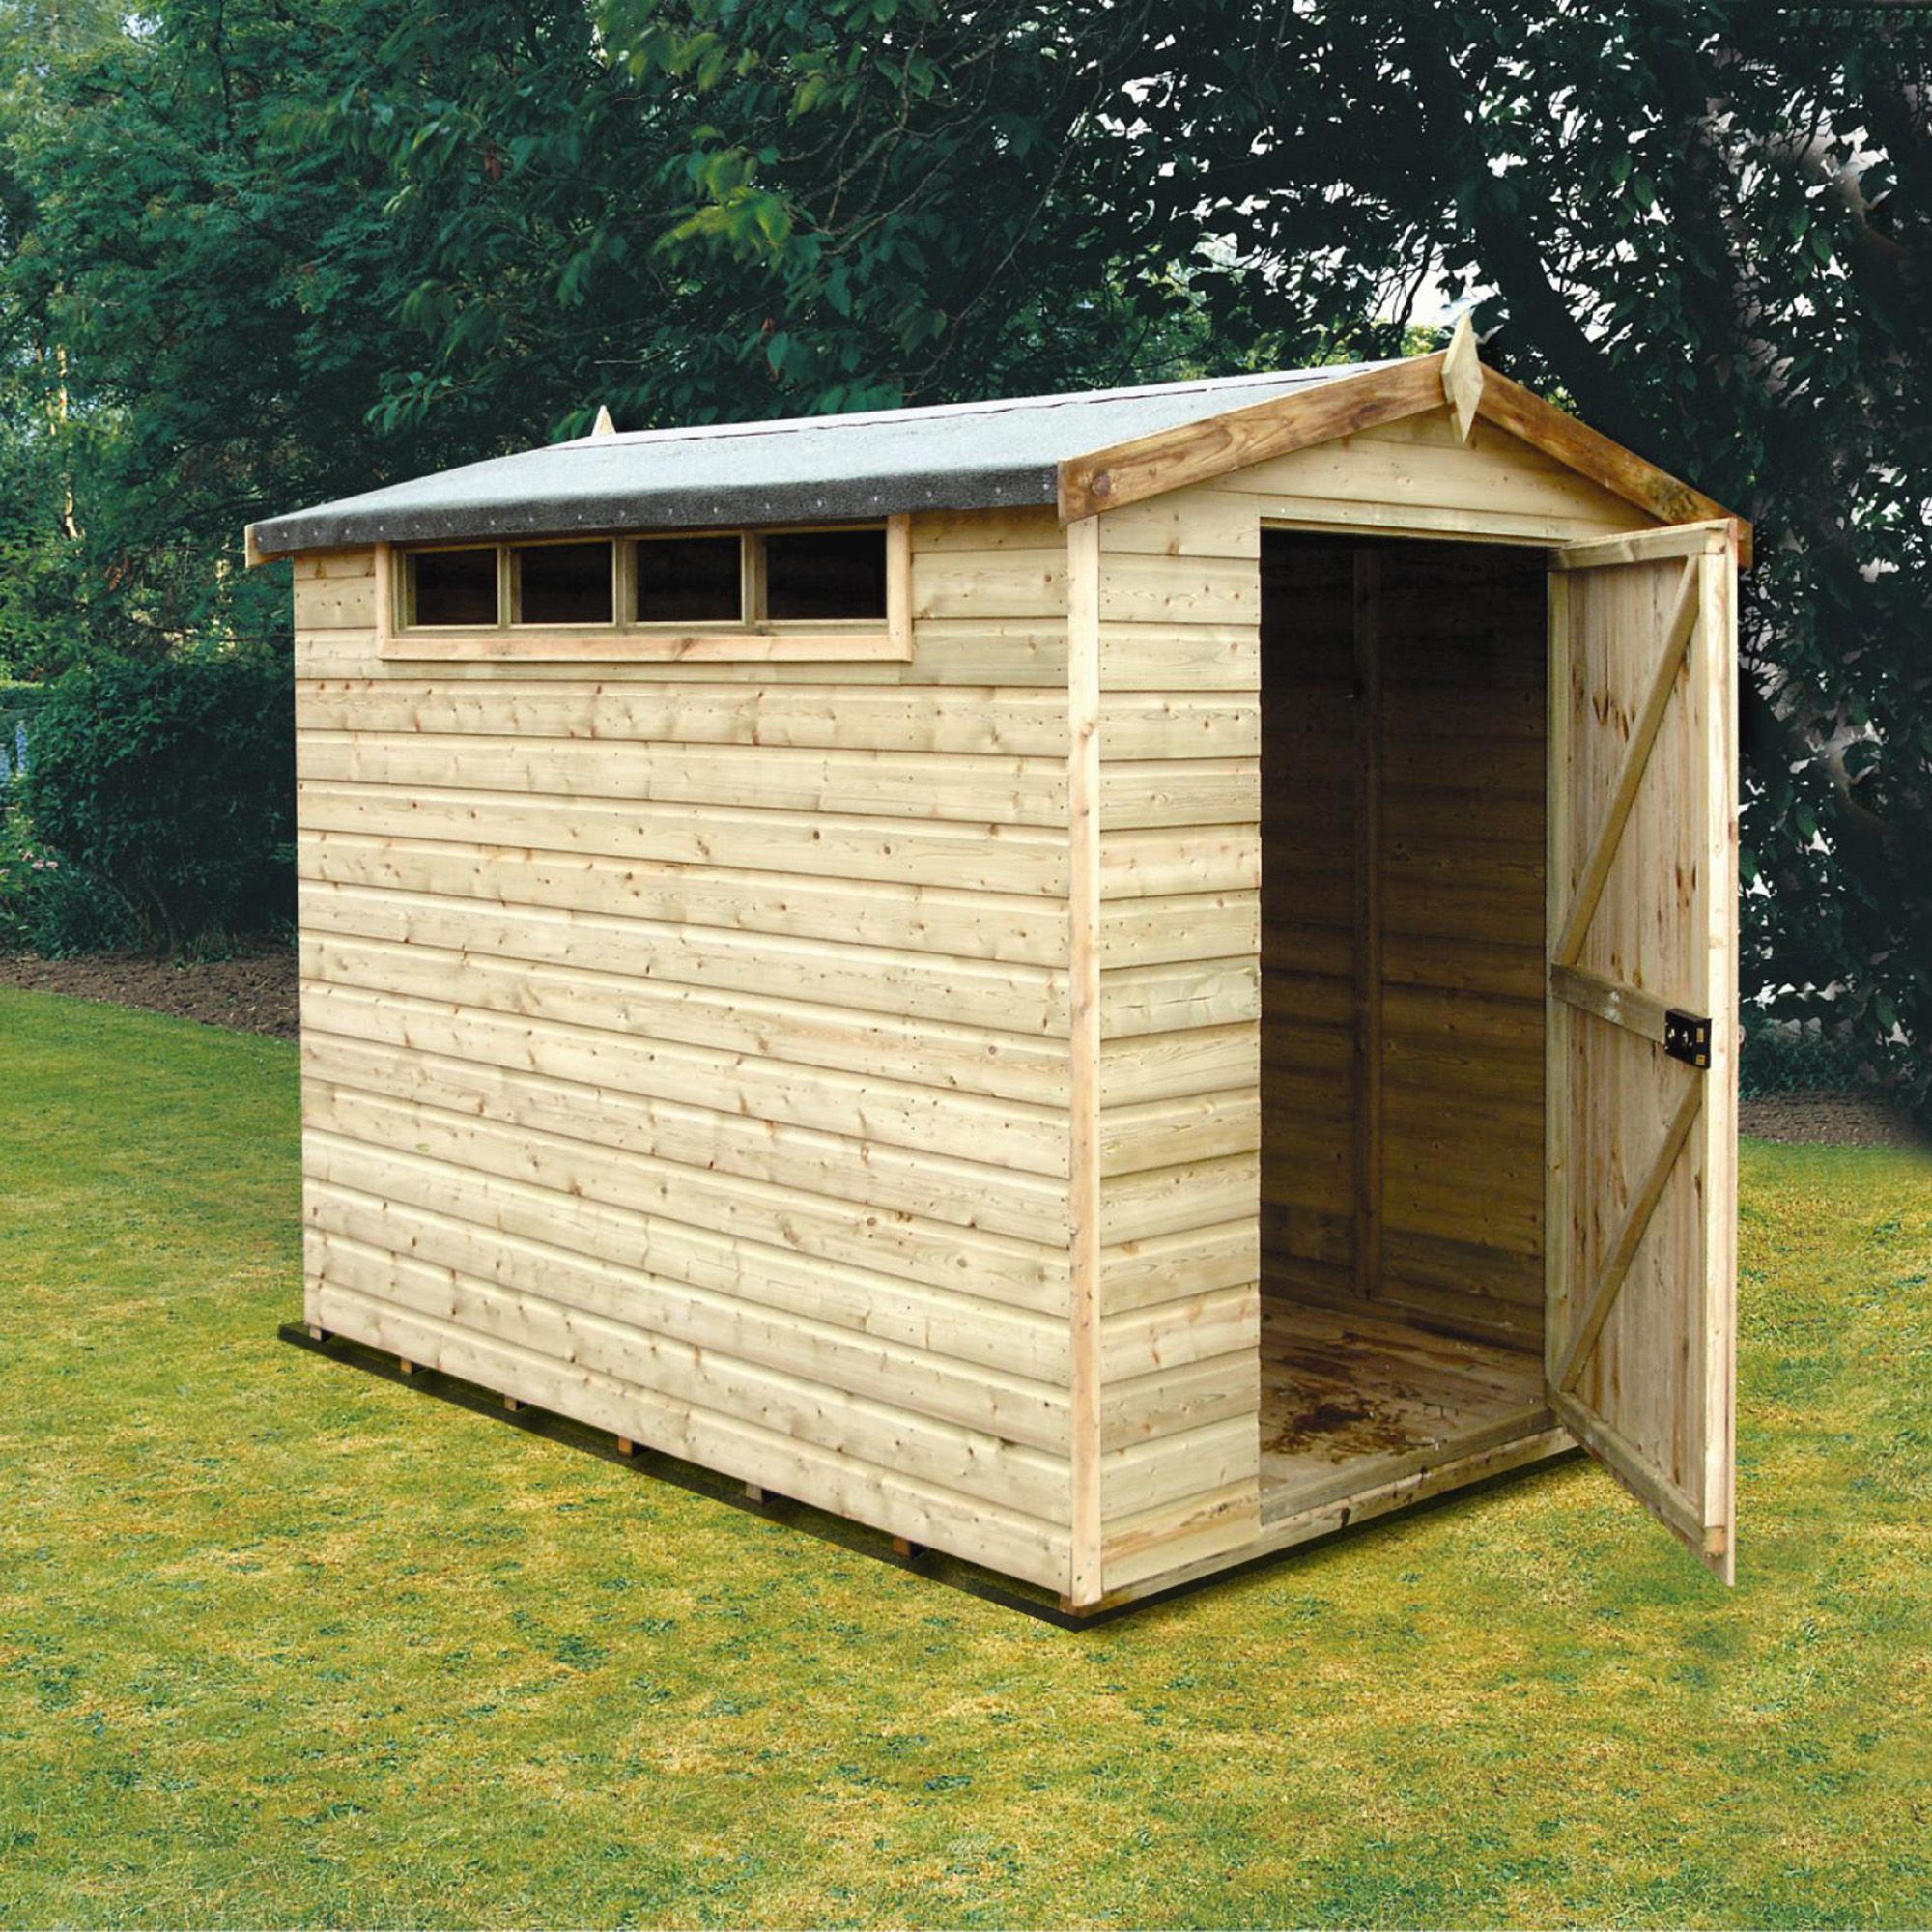 click enlarge com overlap id garden shedswarehouse shed treated sheds pressure apex wooden to with x doors hanbury double